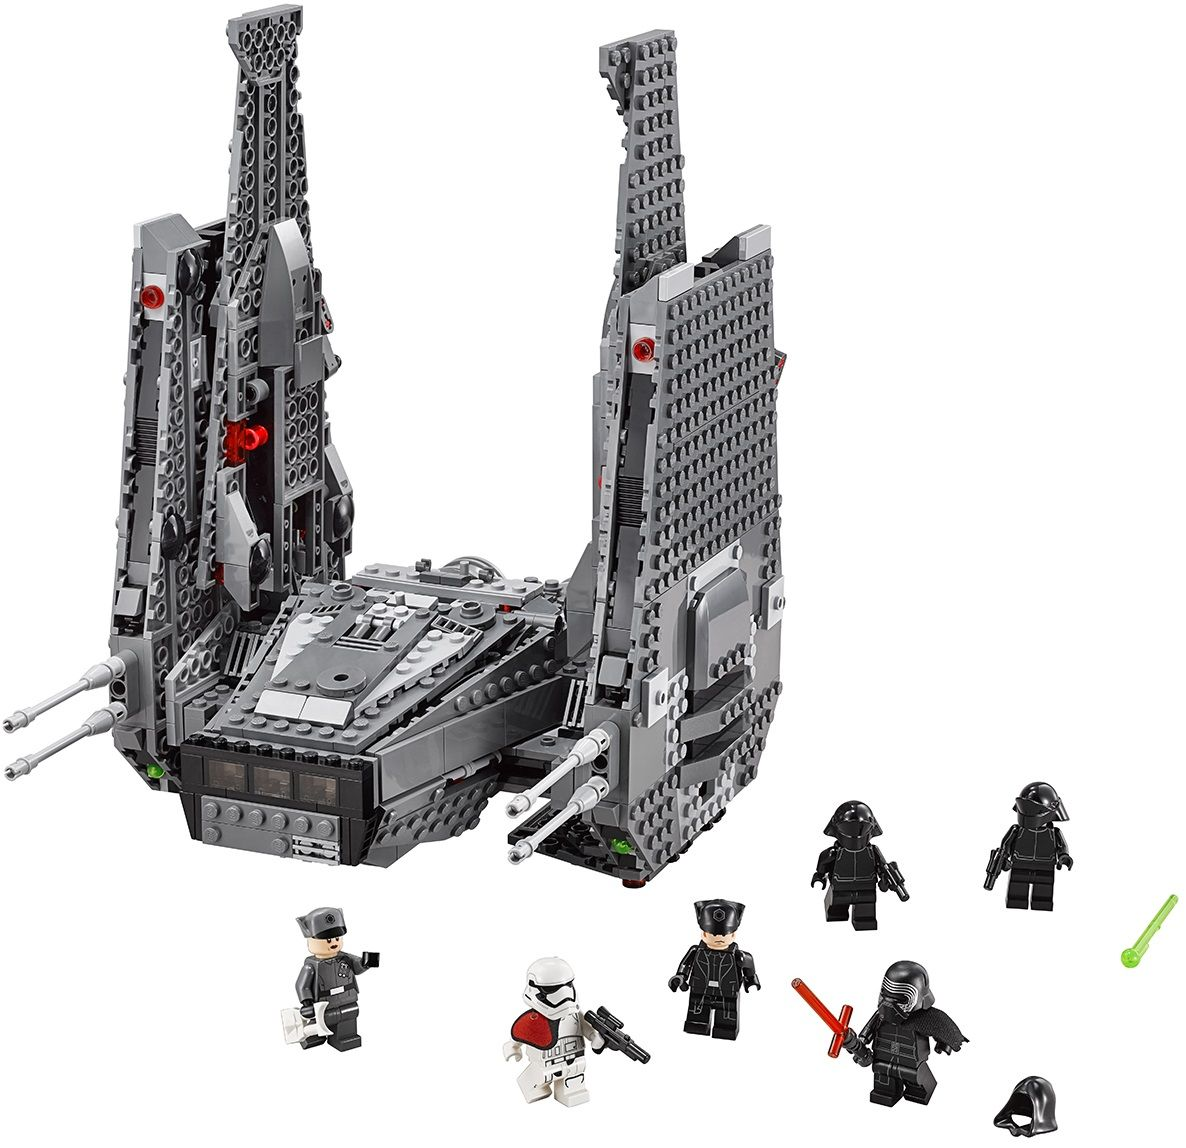 First Official Images Of Star Wars The Force Awakens Lego